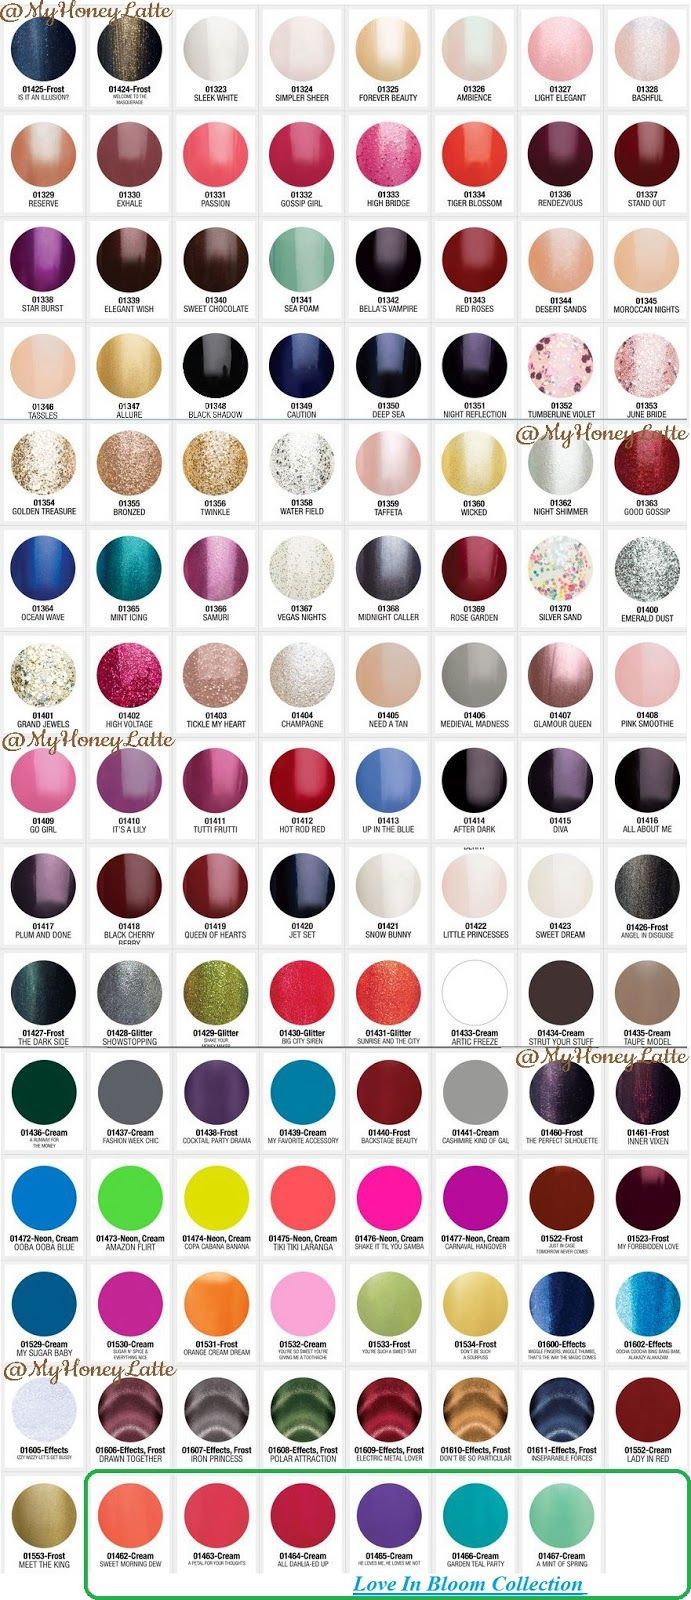 List (&color dot) of many Gelish colors  #Gelish #gel #manicure - Gelish color swatches